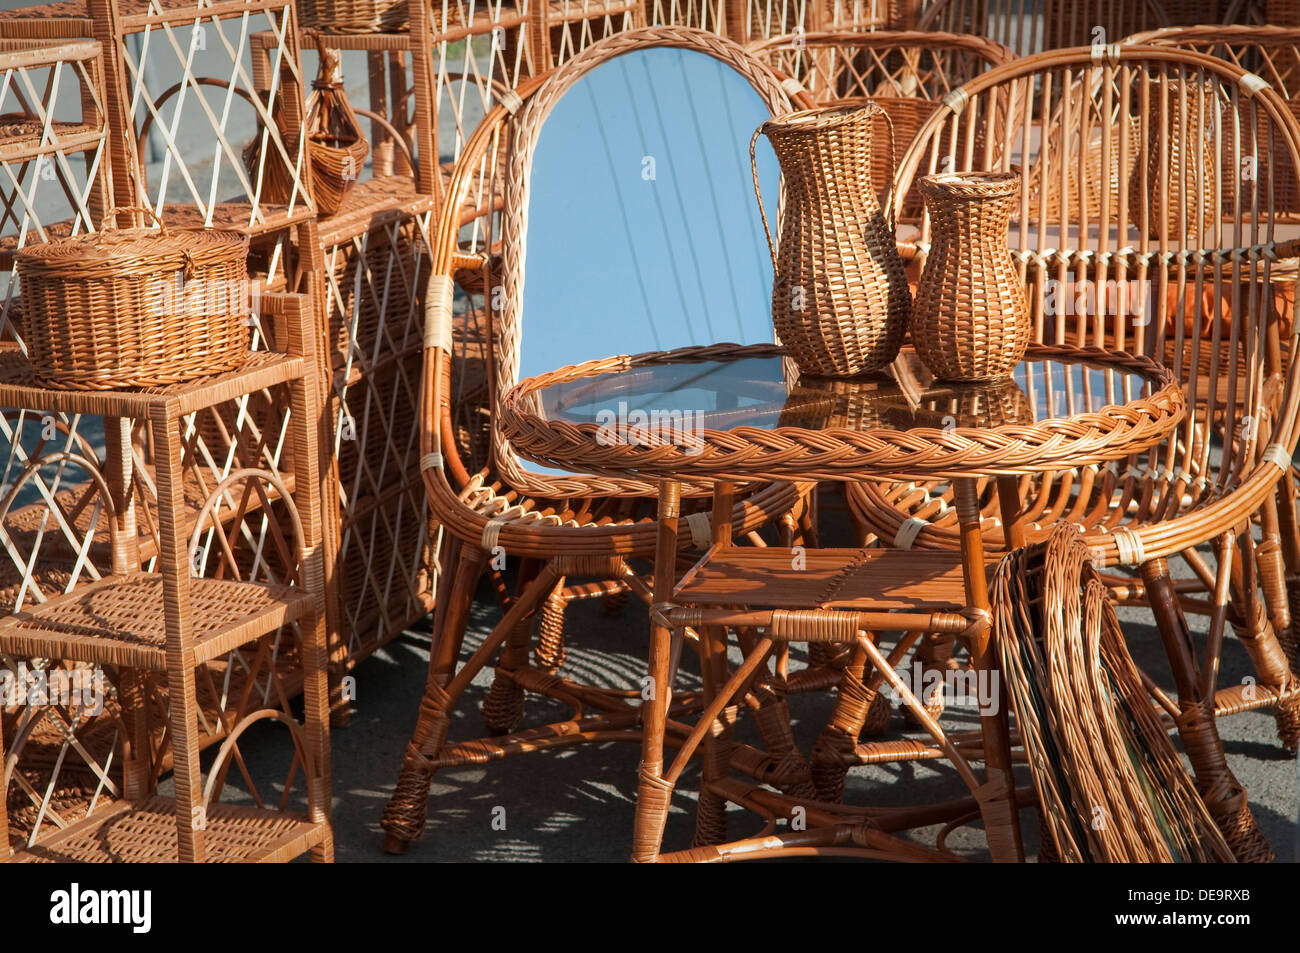 Hand Made Wicker Furniture For Sale At Local Craft Fair In Wadowice, Poland.